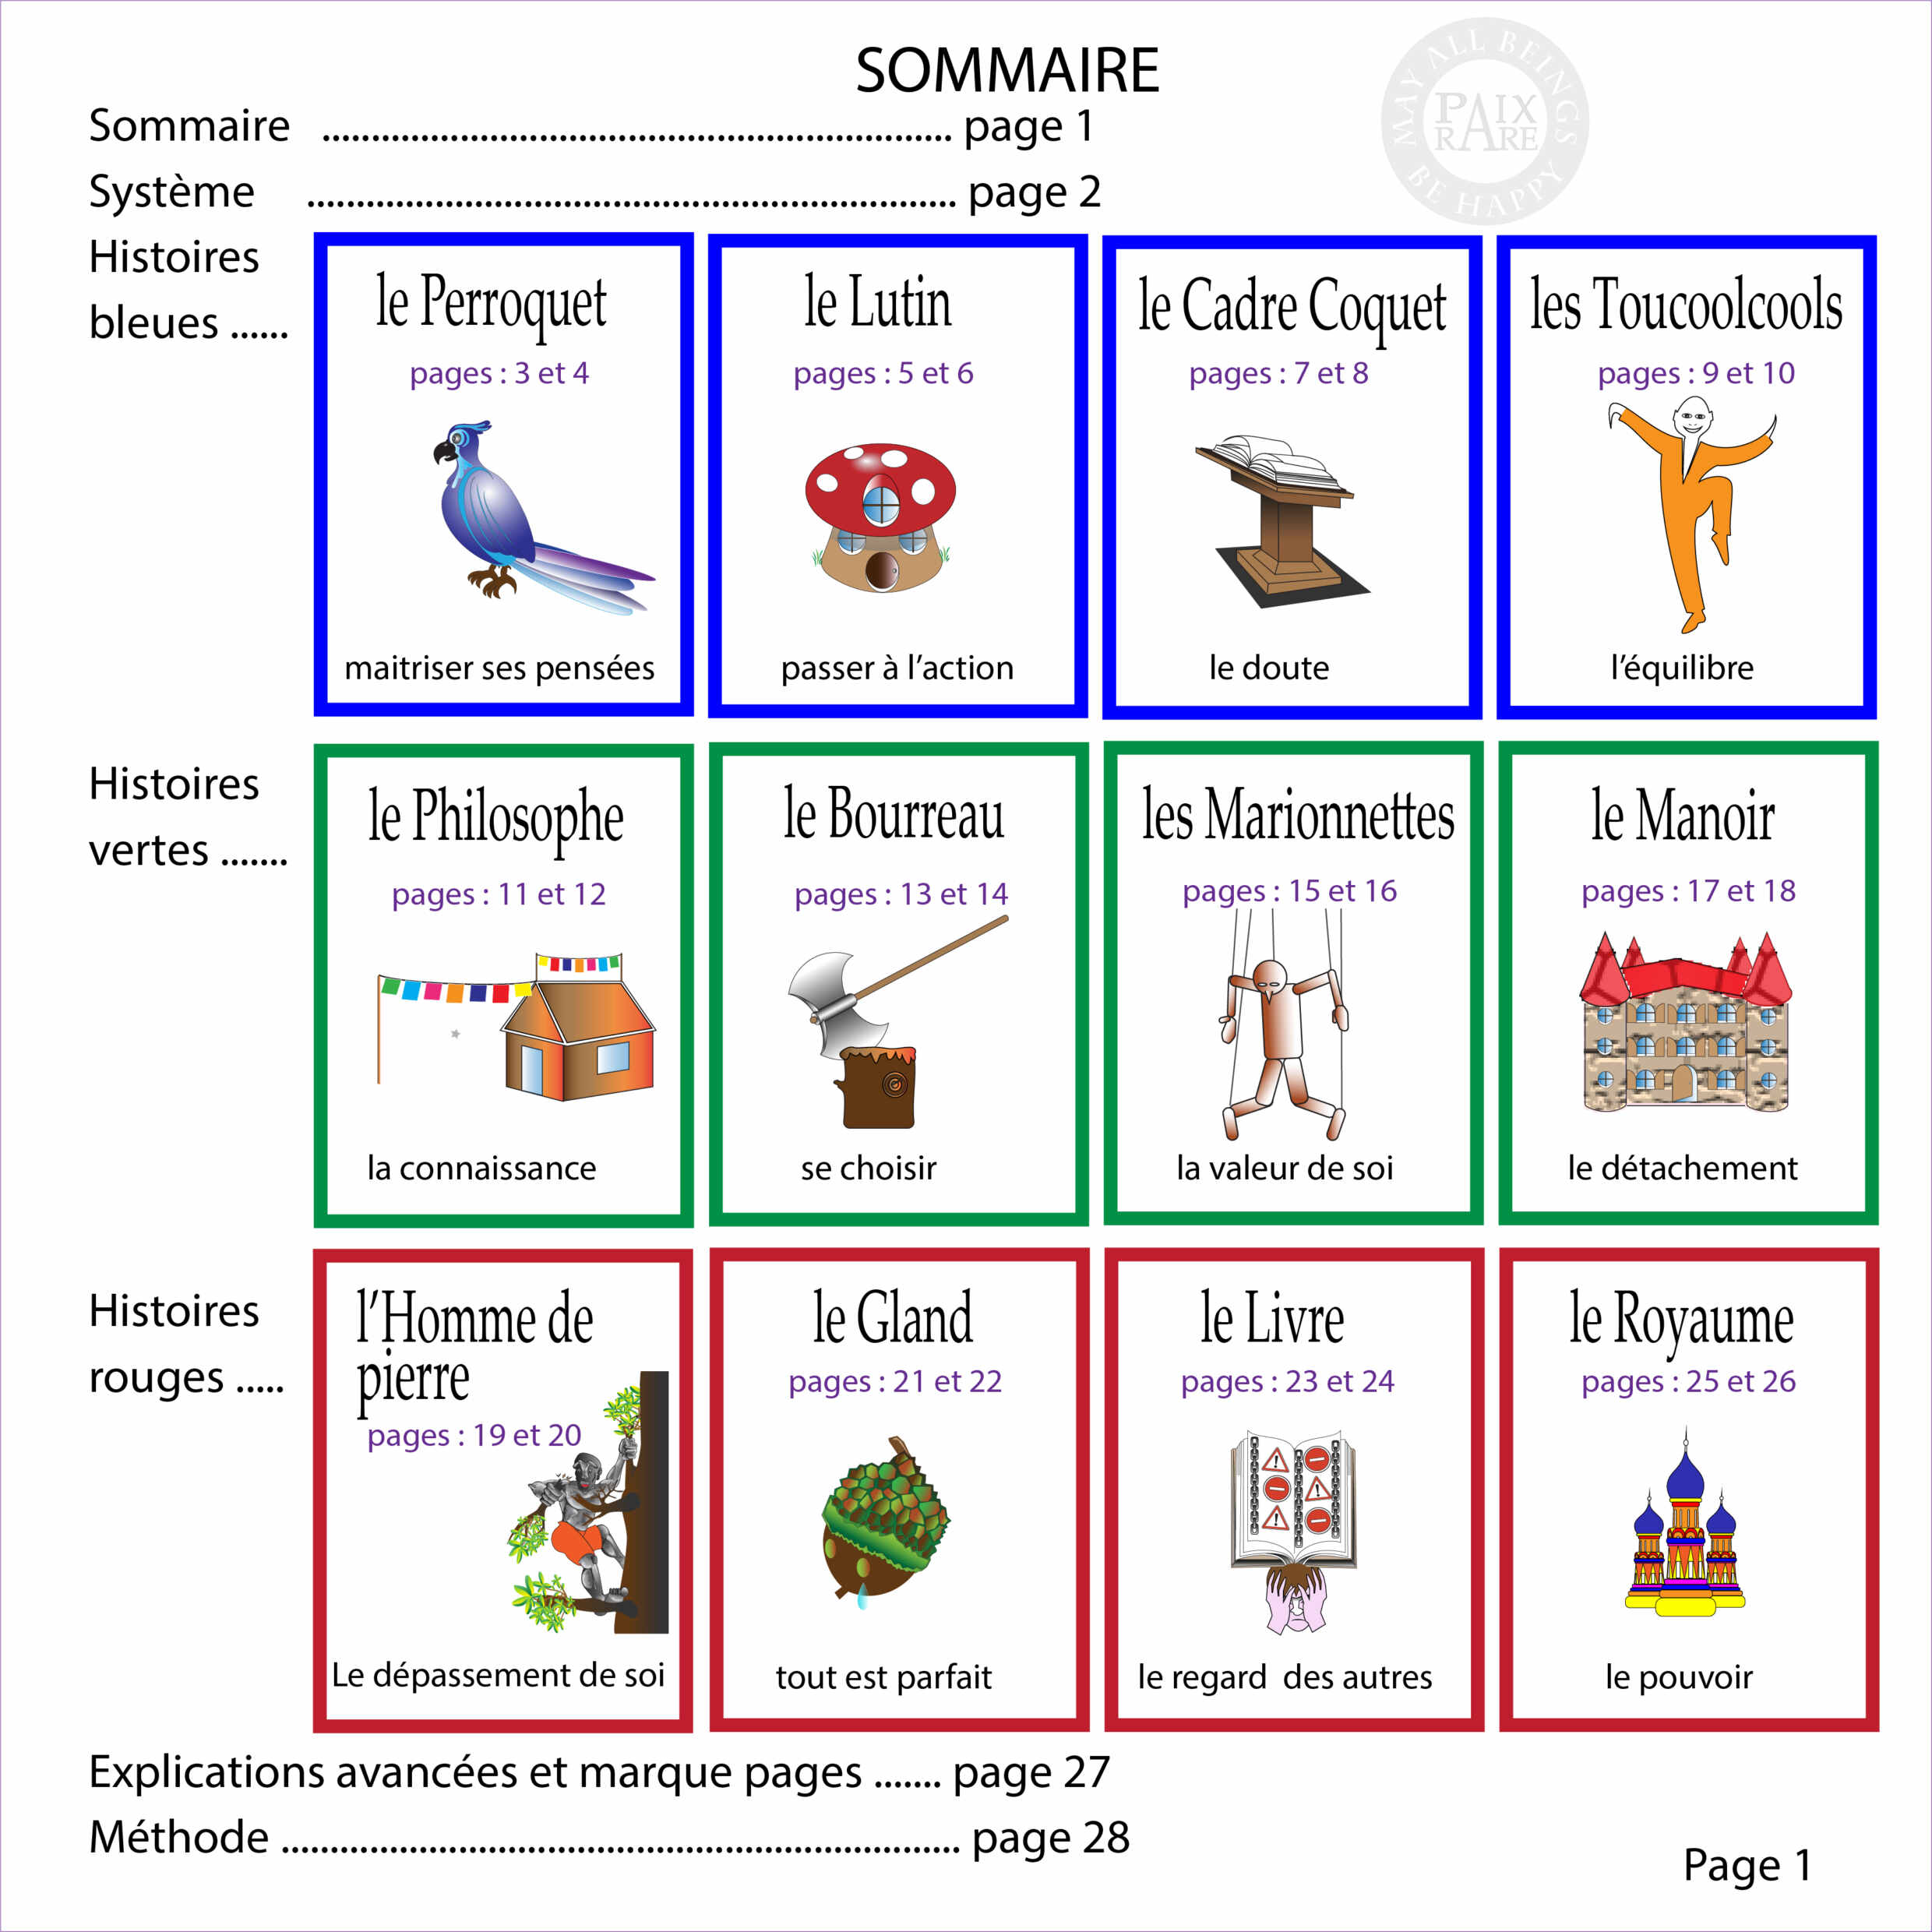 page 1 sommaire